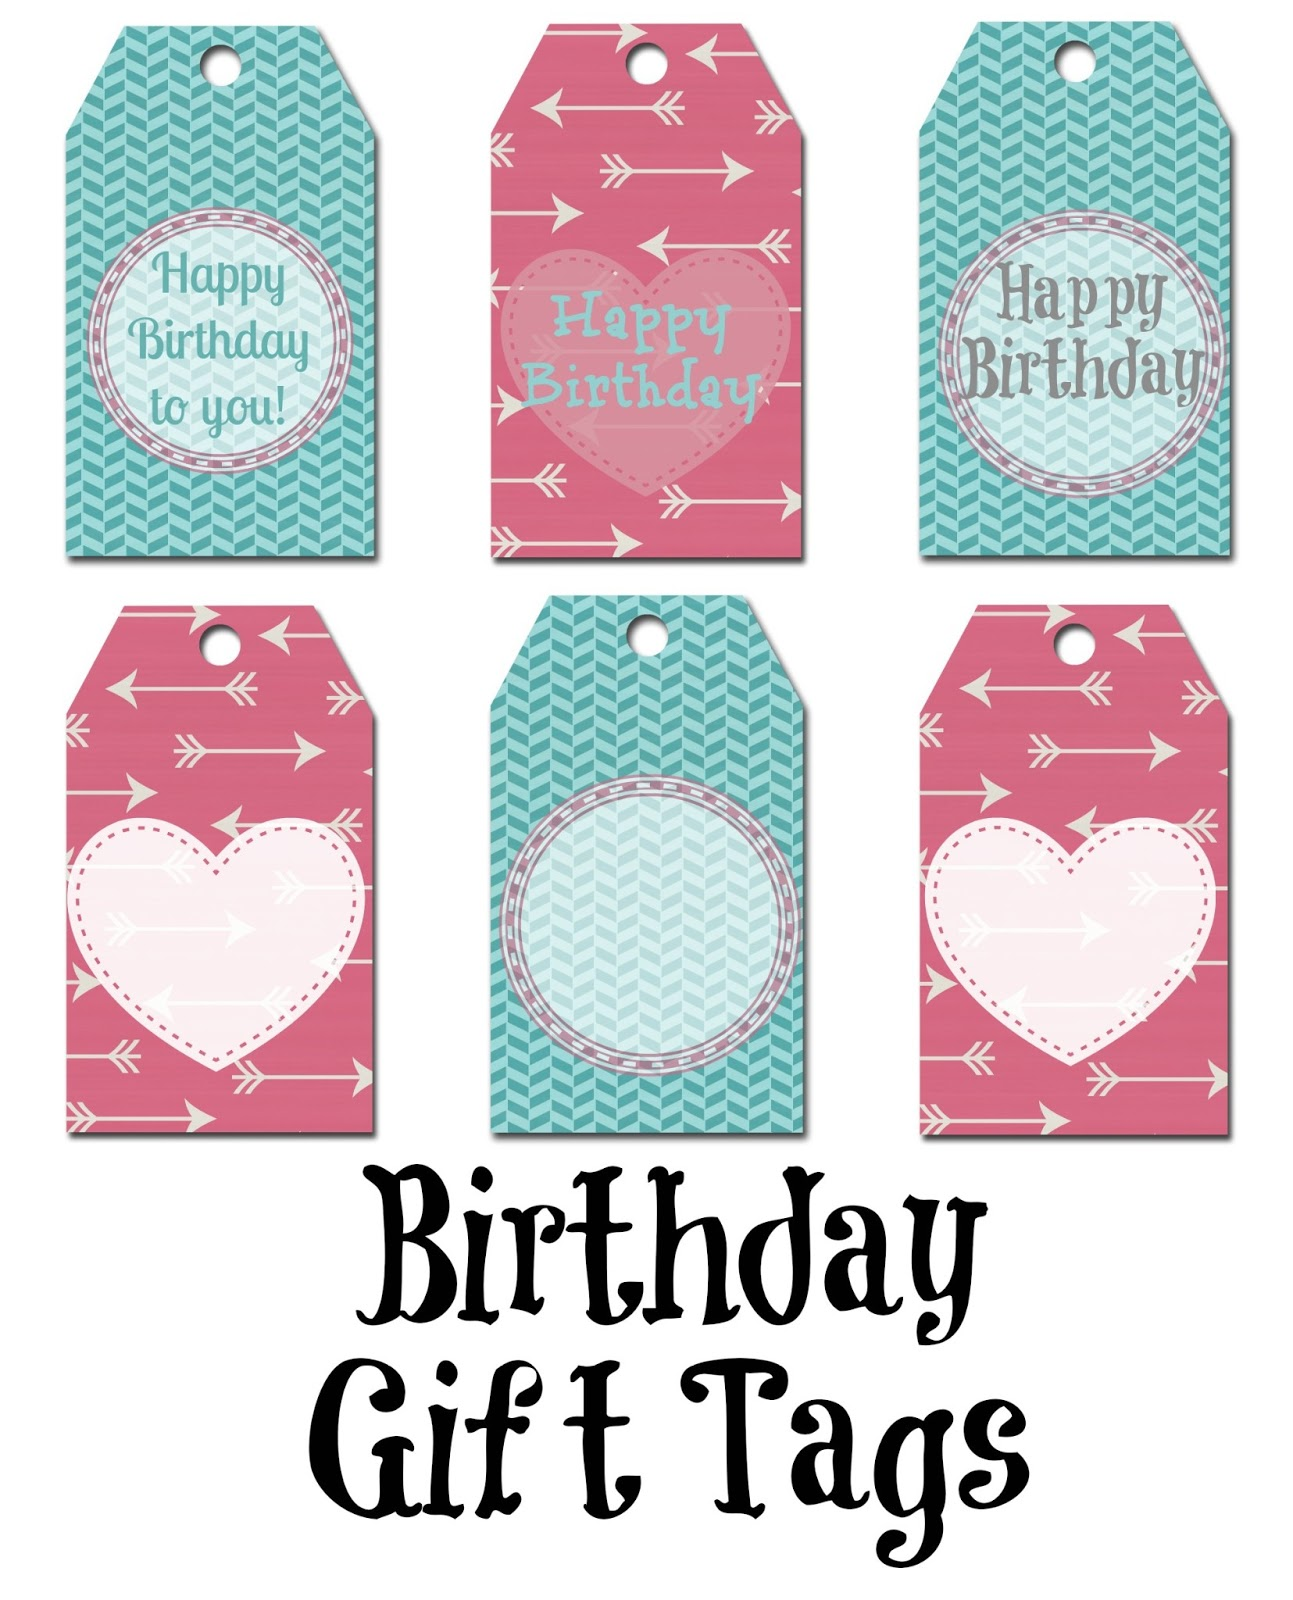 happy birthday free printable tags ; free-printable-birthday-gift-tags_235279